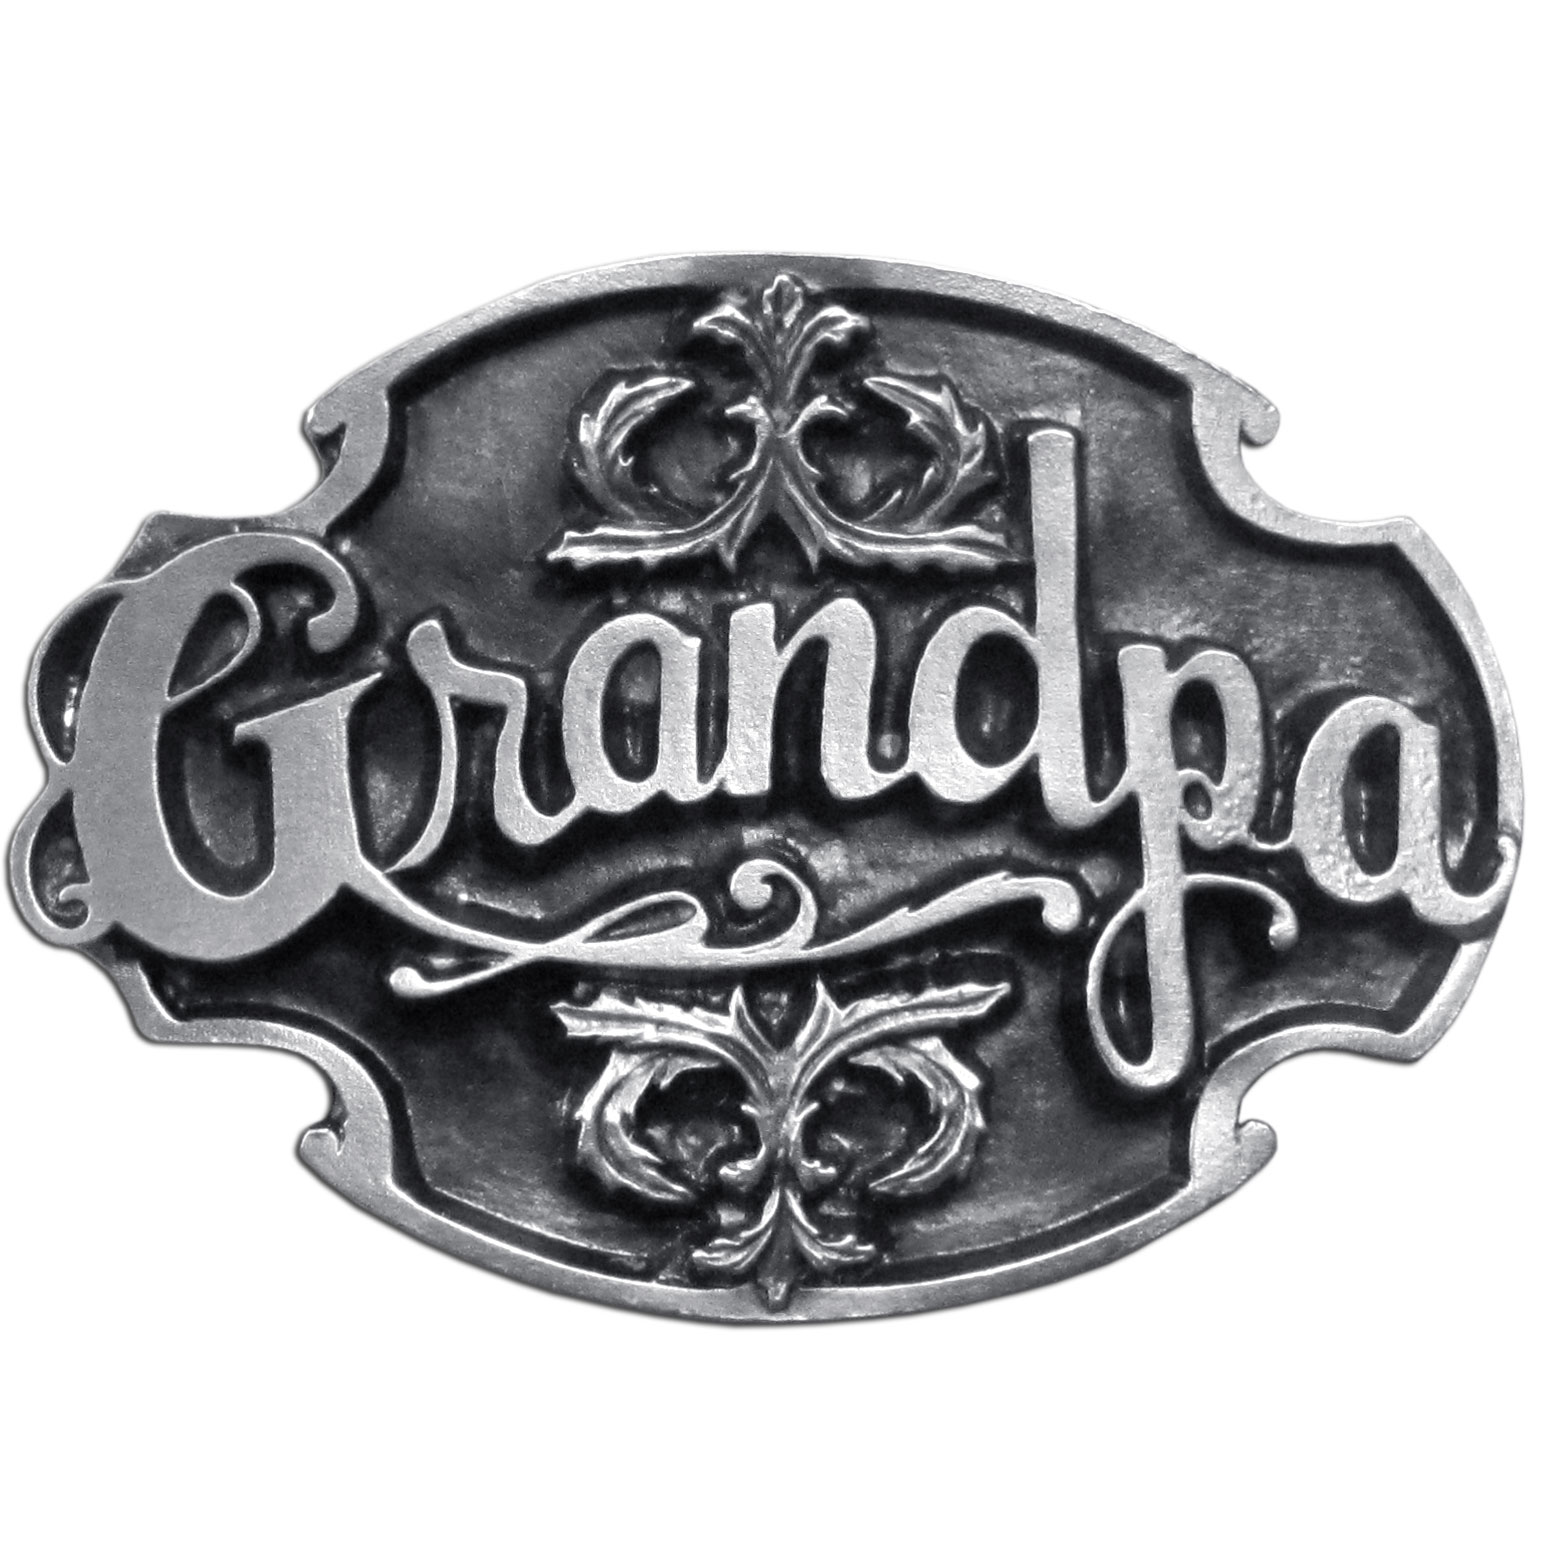 "Grandpa Antiqued Belt Buckle - ""Are you a grandpa?  This belt buckle is for you!  Show how proud you are of your grandchildren by wearing this """"Grandpa"""" belt buckle!  This is a great gift, on the back are the words, """"Grandpa...my best memories are those which you were a part."""""""